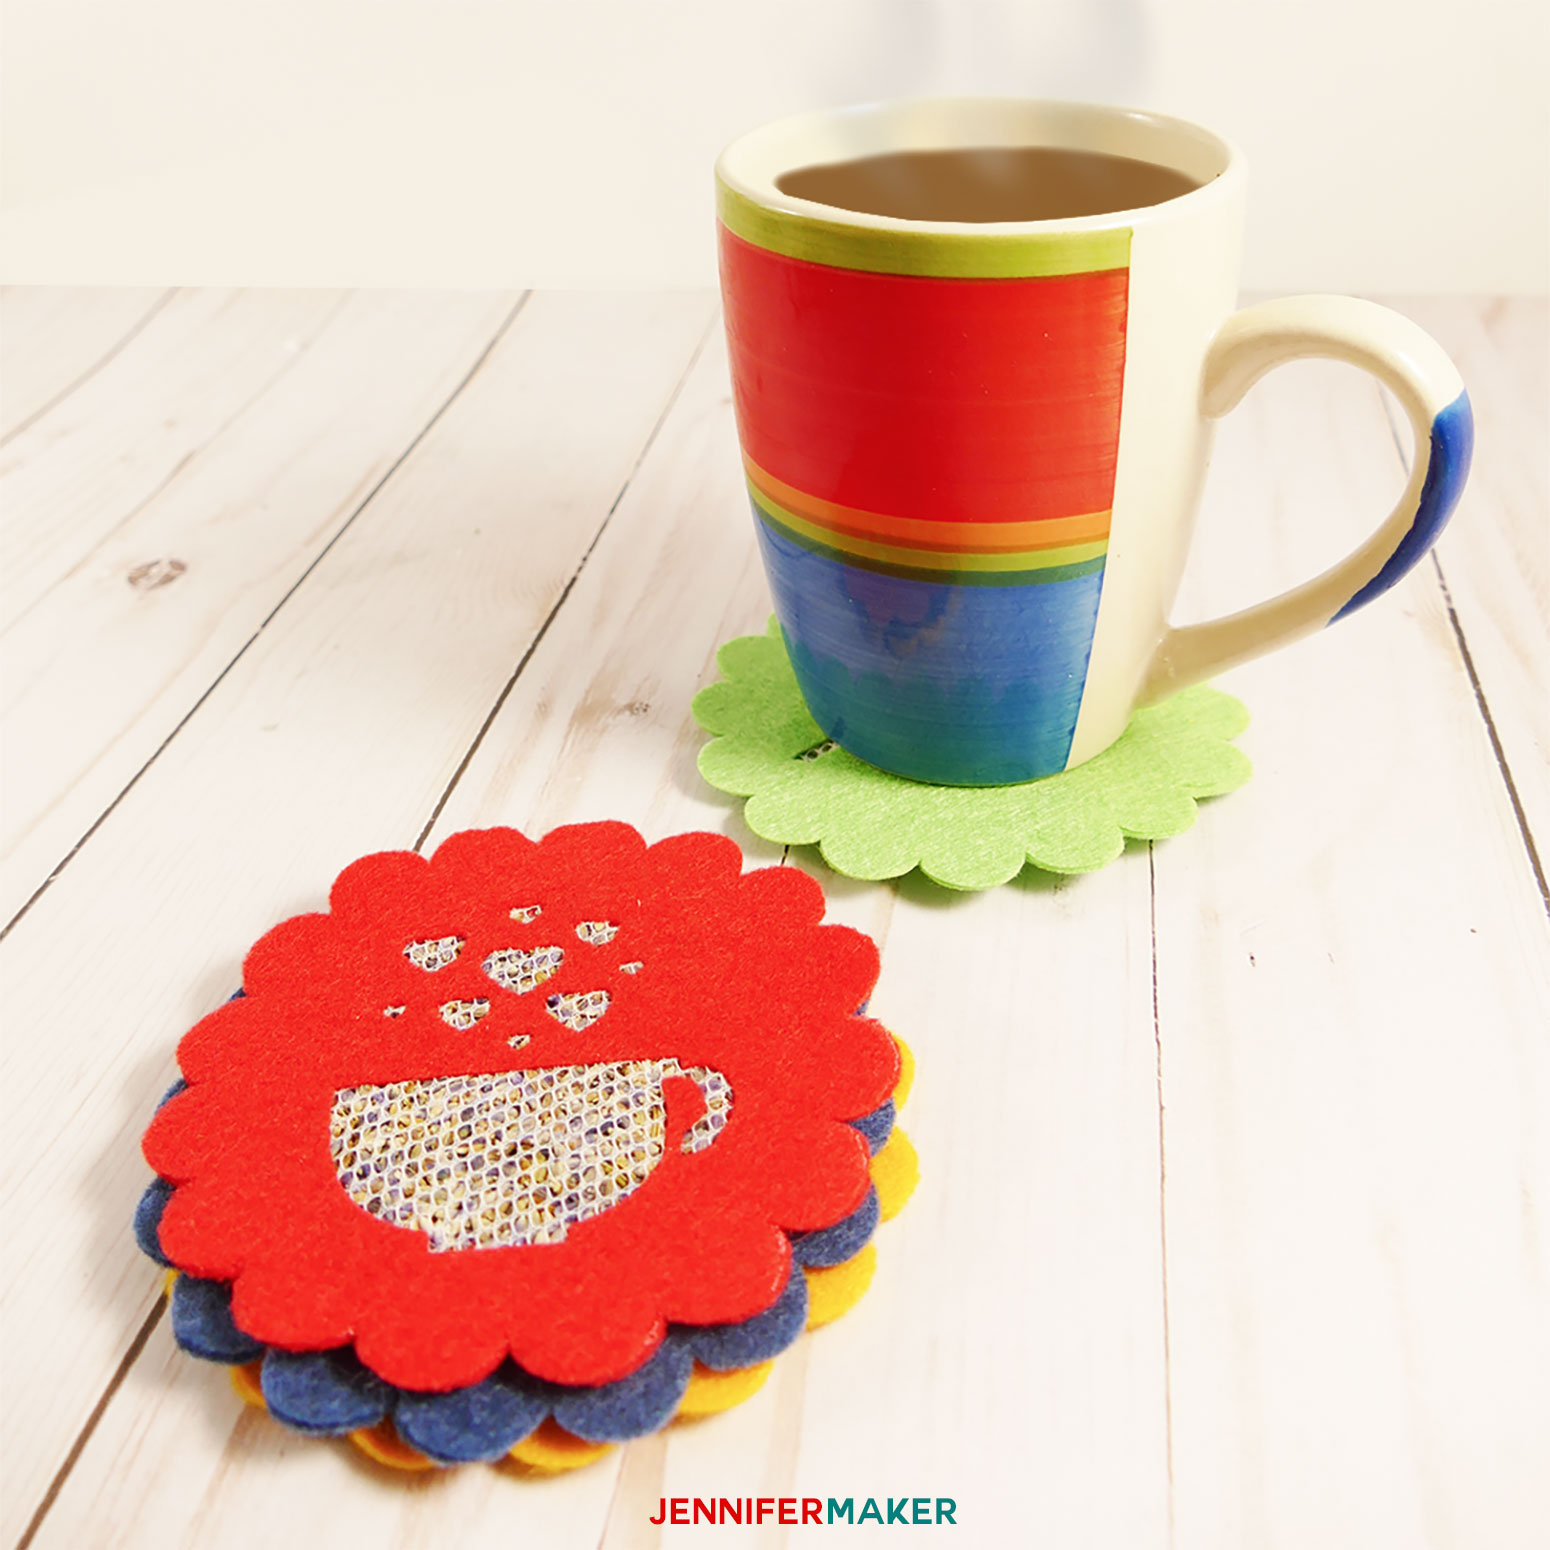 DIY Felt Sachet Coasters Smell Great with a Warm Mug! | Floral Sachets | Cricut Maker SVG Cut File Project - Cricut Maker Projects